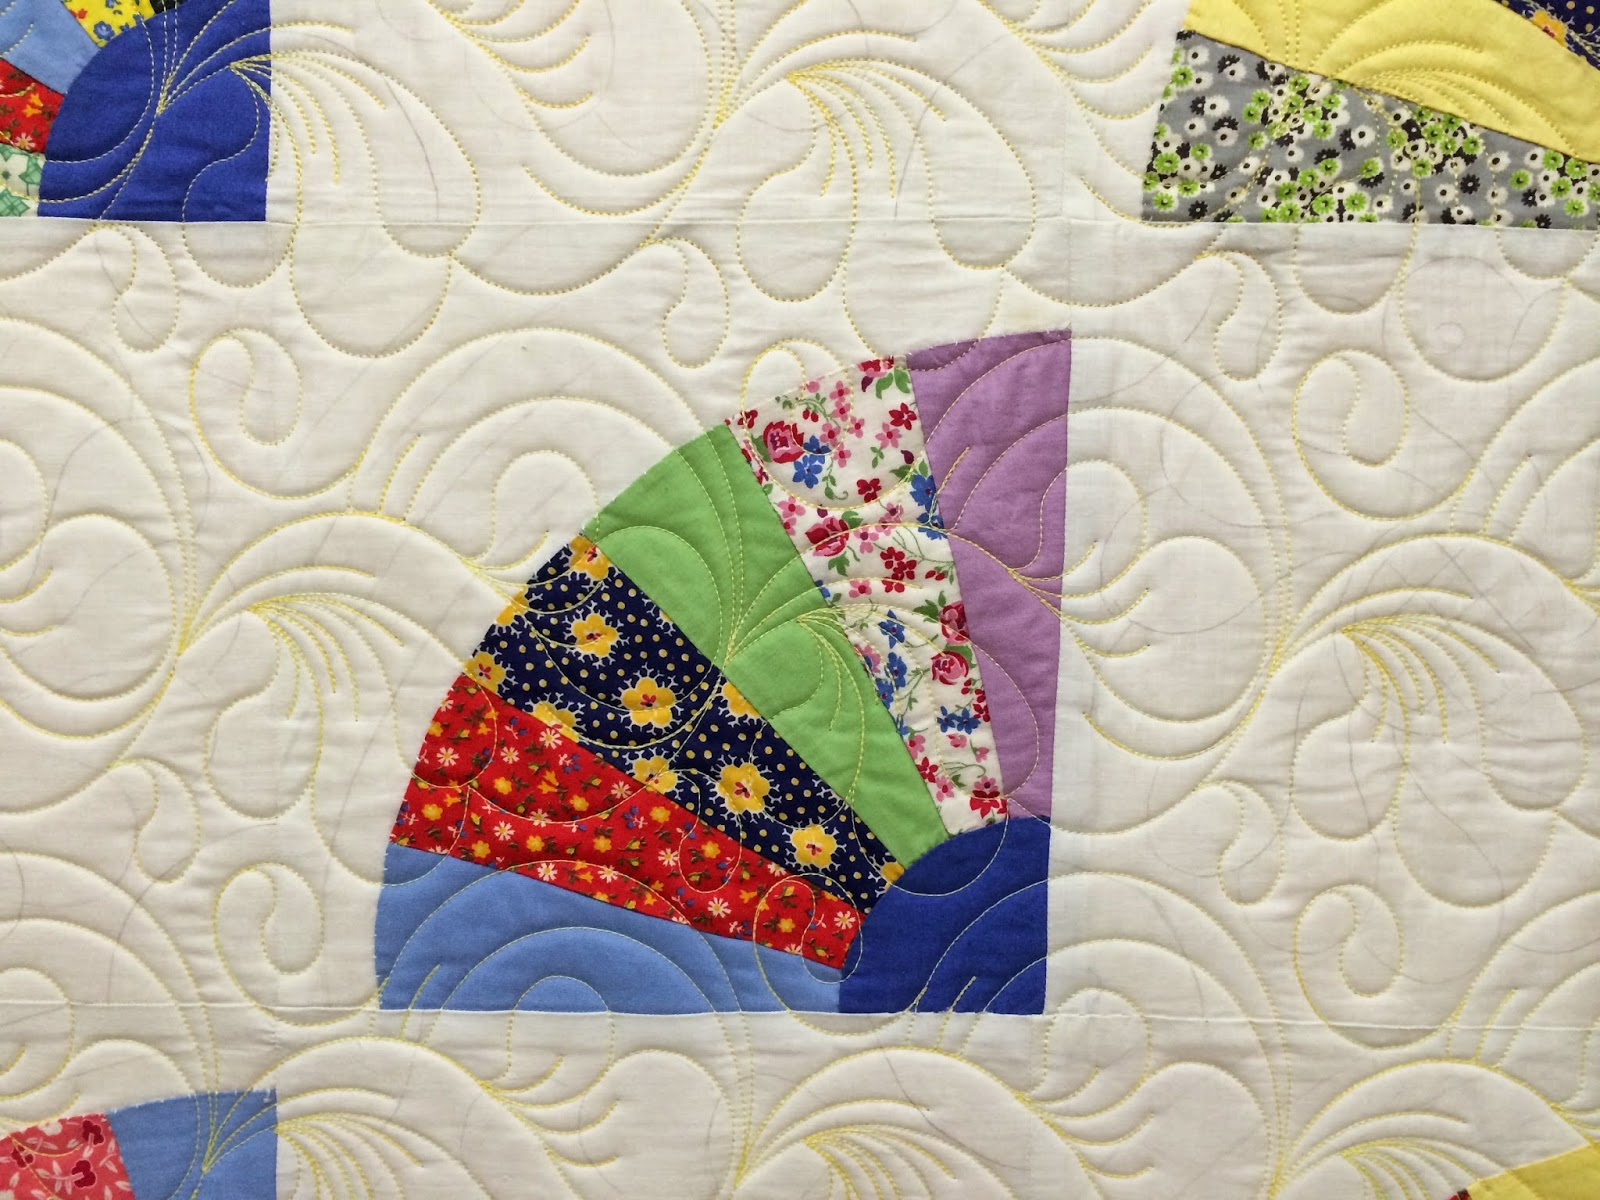 Marilyn McLeod's Grandmother Fan Quilt